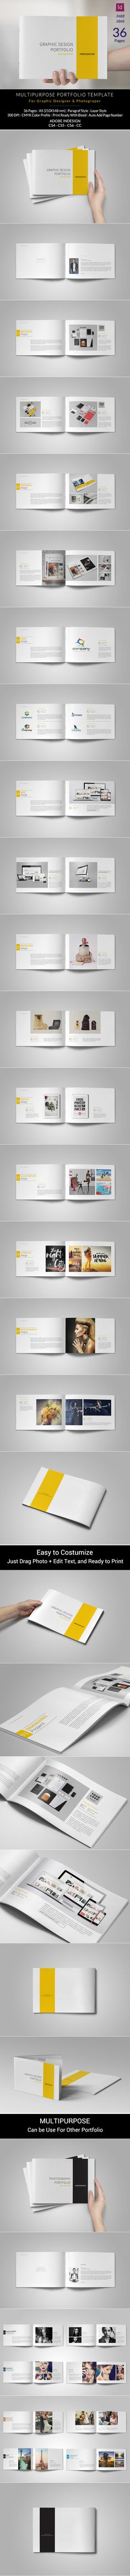 This is 36 page minimal brochure template is for designers working on product/graphic design portfolios interior design catalogues, product catalogues, Portfolio Photography and agency based projects. Just drop in your own images and texts, and it's Ready… More